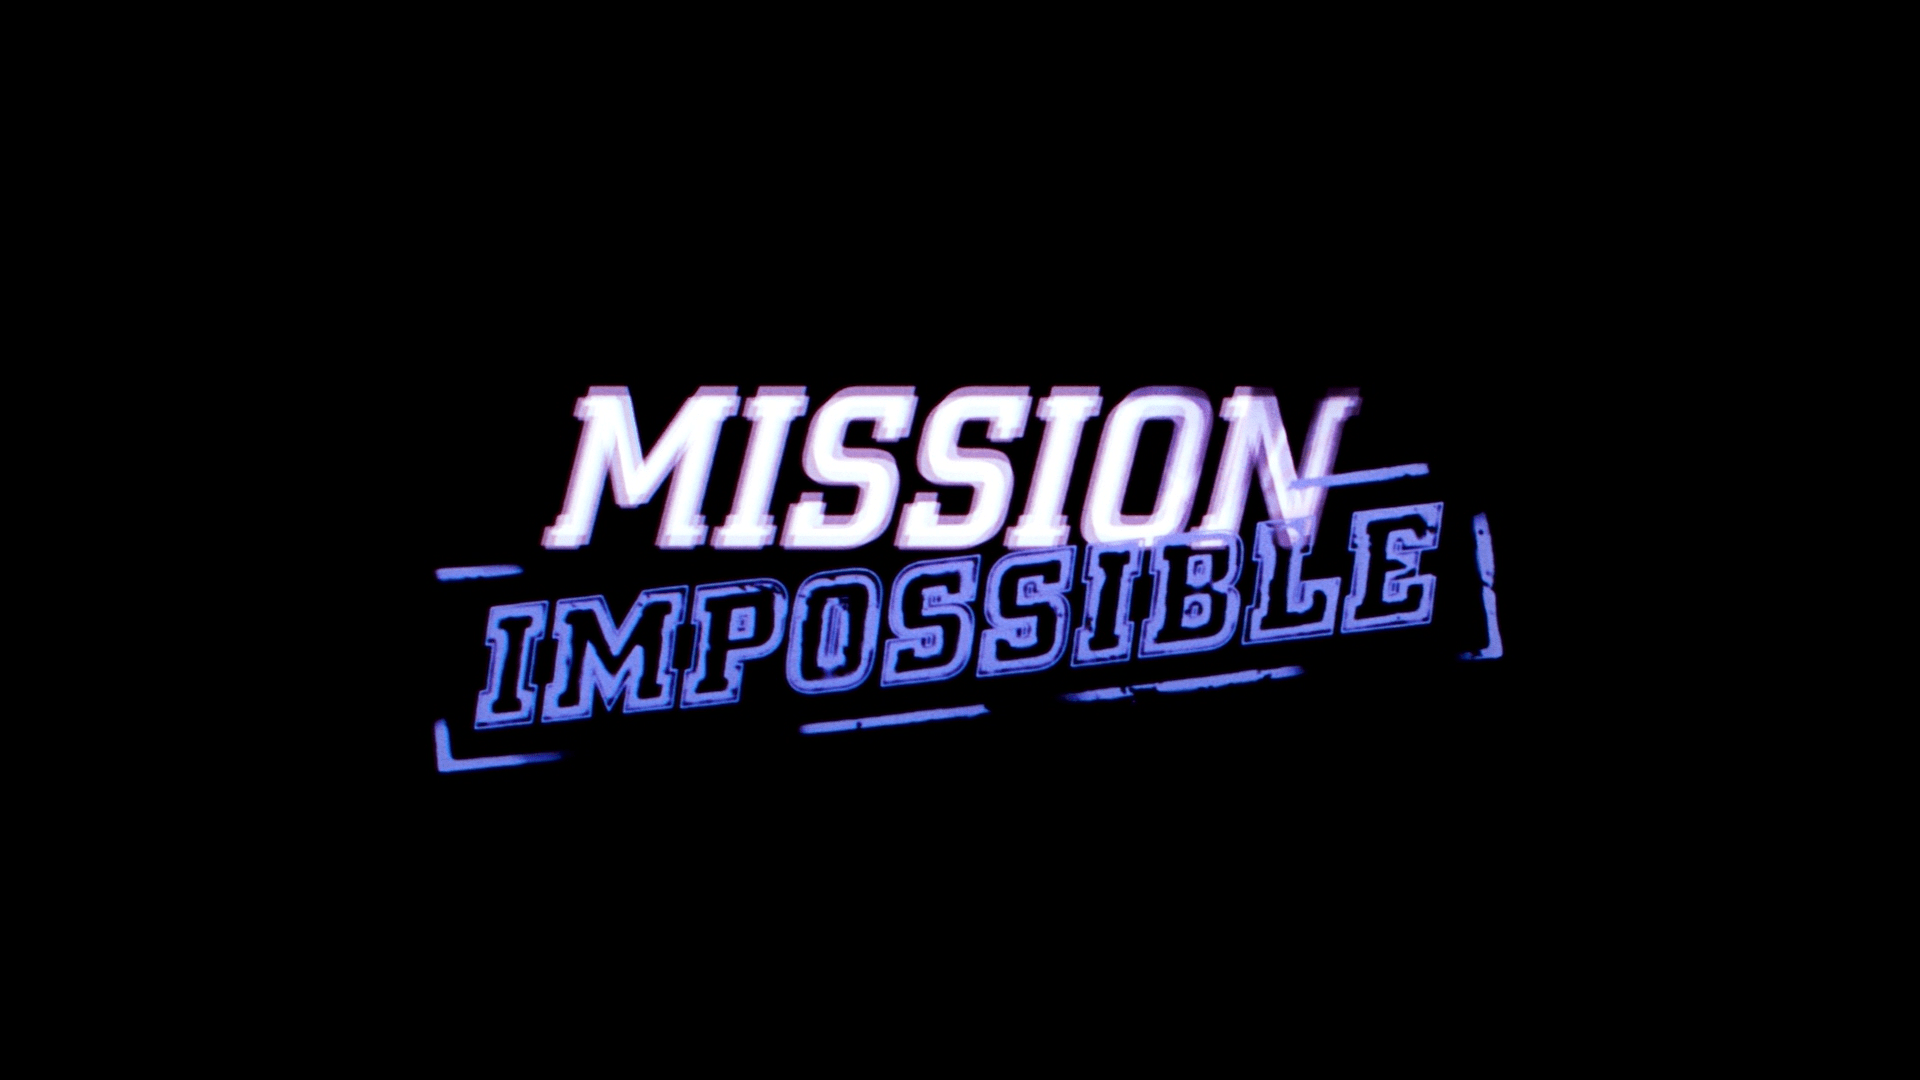 Mission Impossible turns 25 with an improved Blu-ray [Review] 1